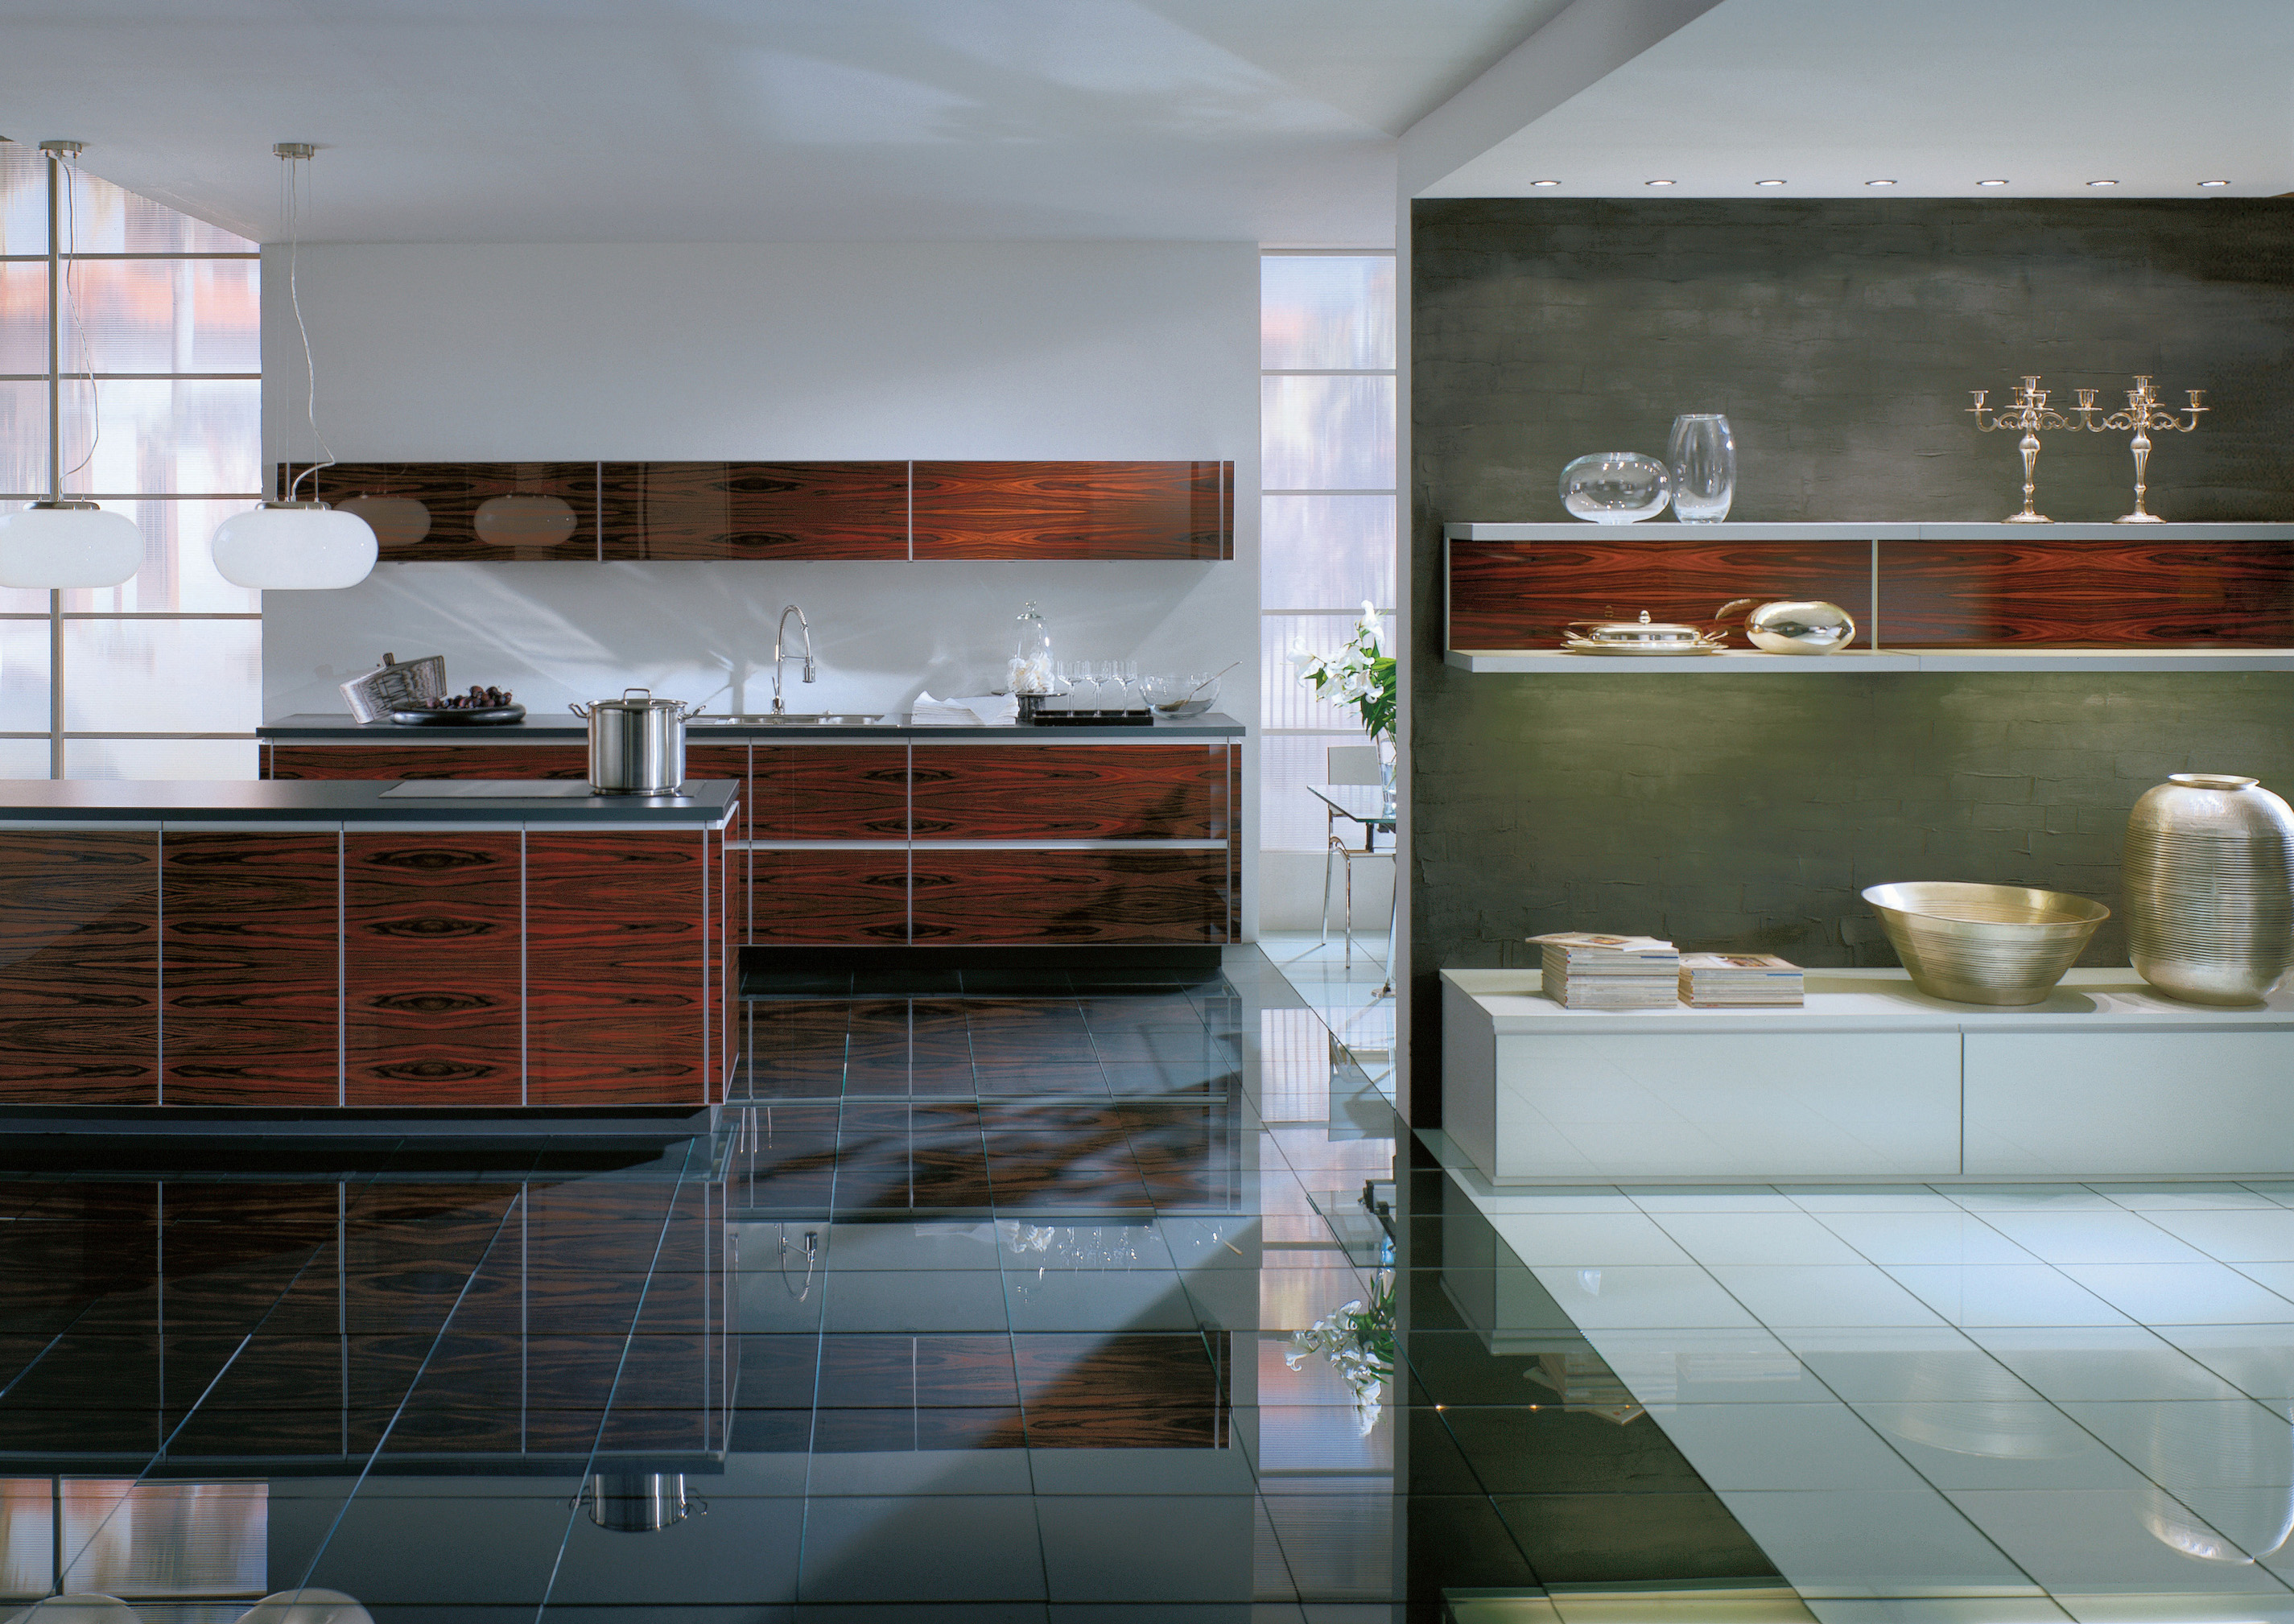 Alno Kitchen Cabinets Chicago -  alno finn collectionexample of drawer organization